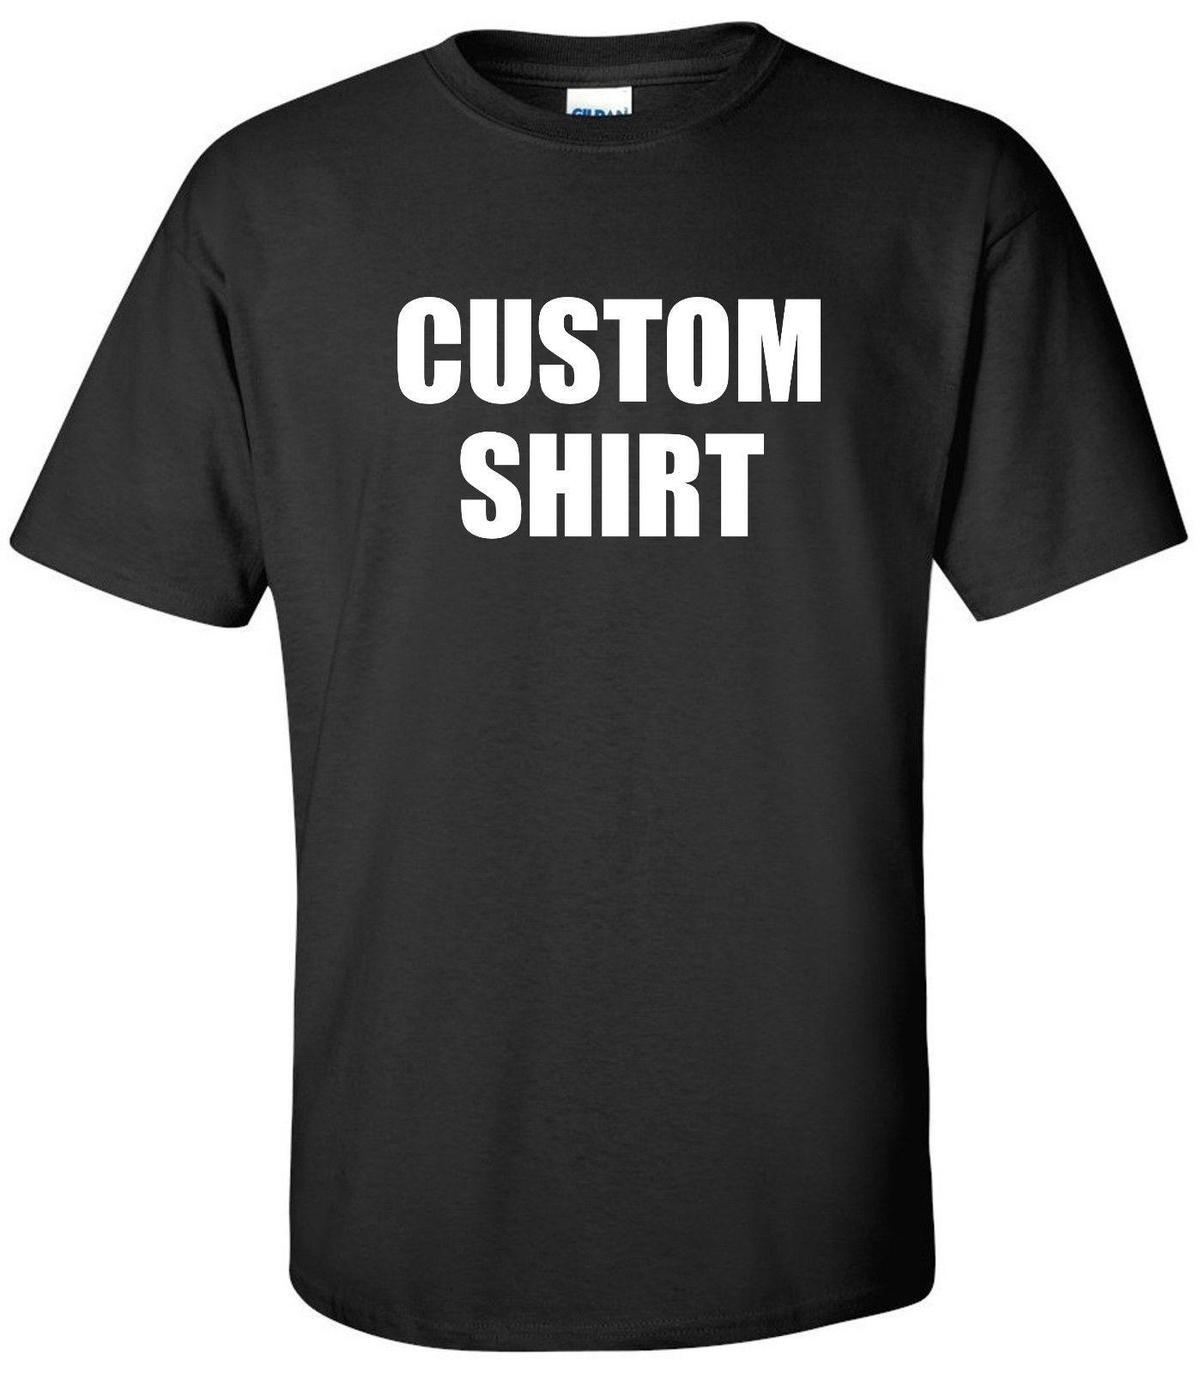 aa1a3623b Custom T Shirt Any Text Business Gift Customized Personalized Tees Tee Shirt  White T Shirts With Designs Cloth T Shirt From Lijian54, $12.08| DHgate.Com